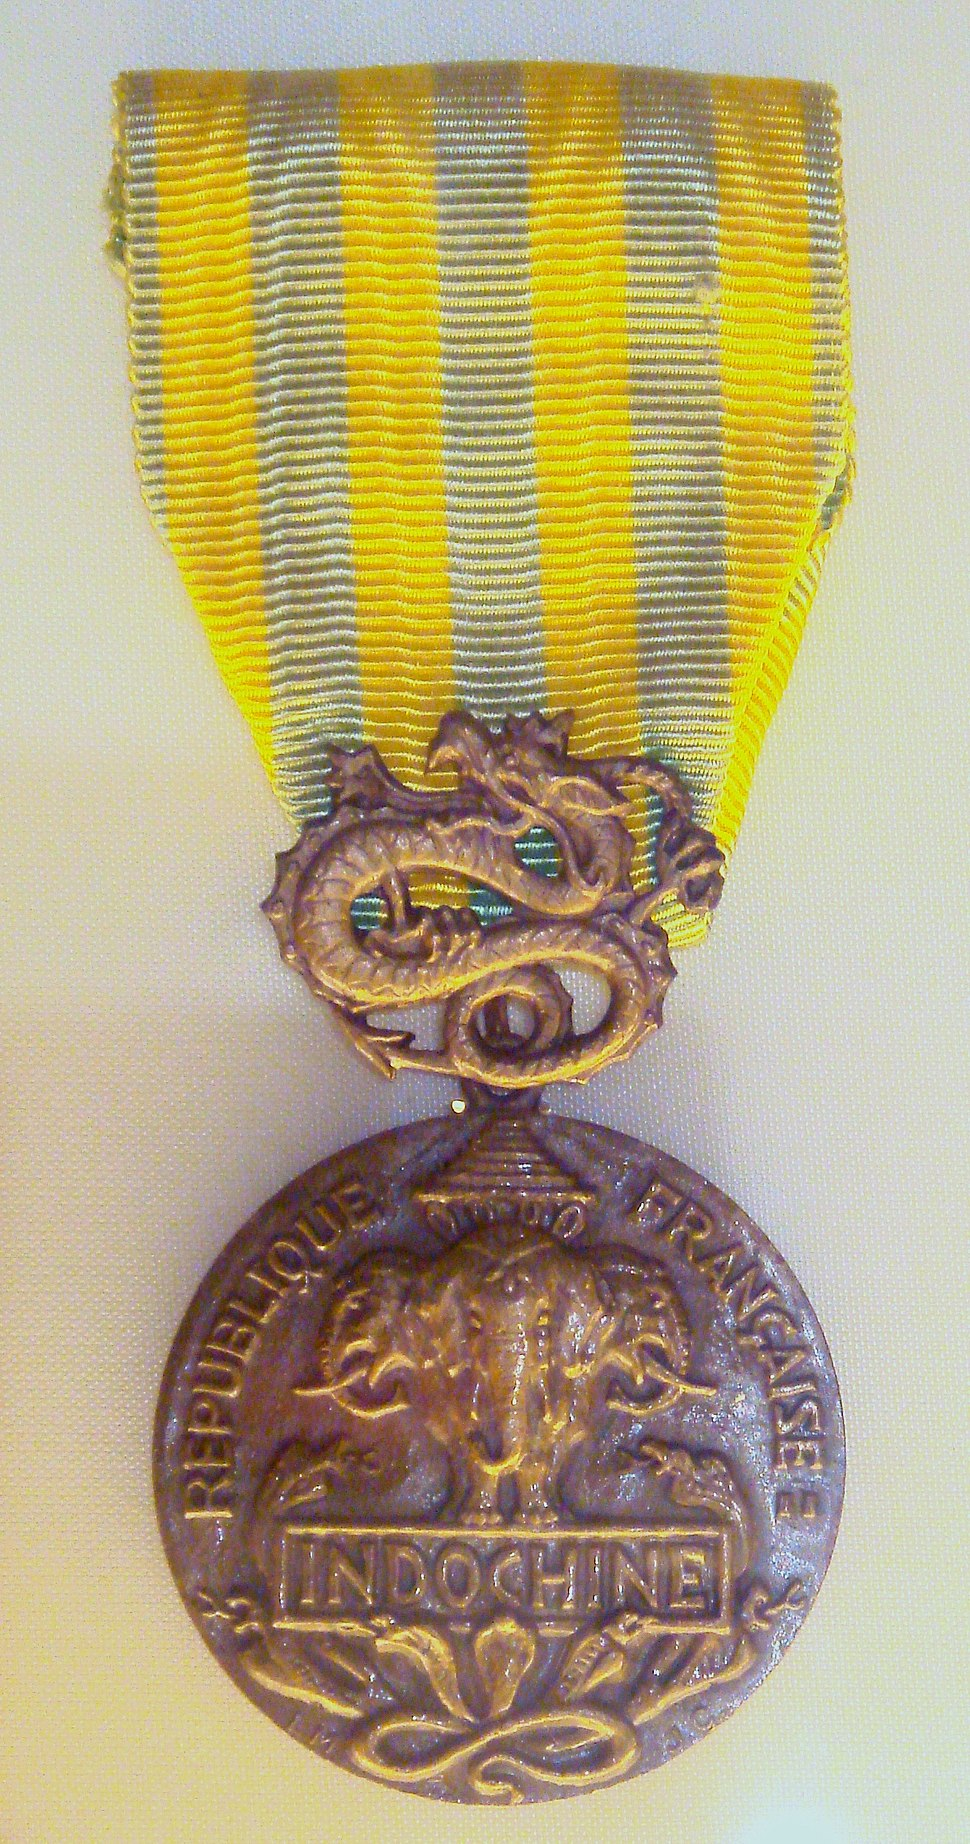 French Indochina medal law of 1 August 1953